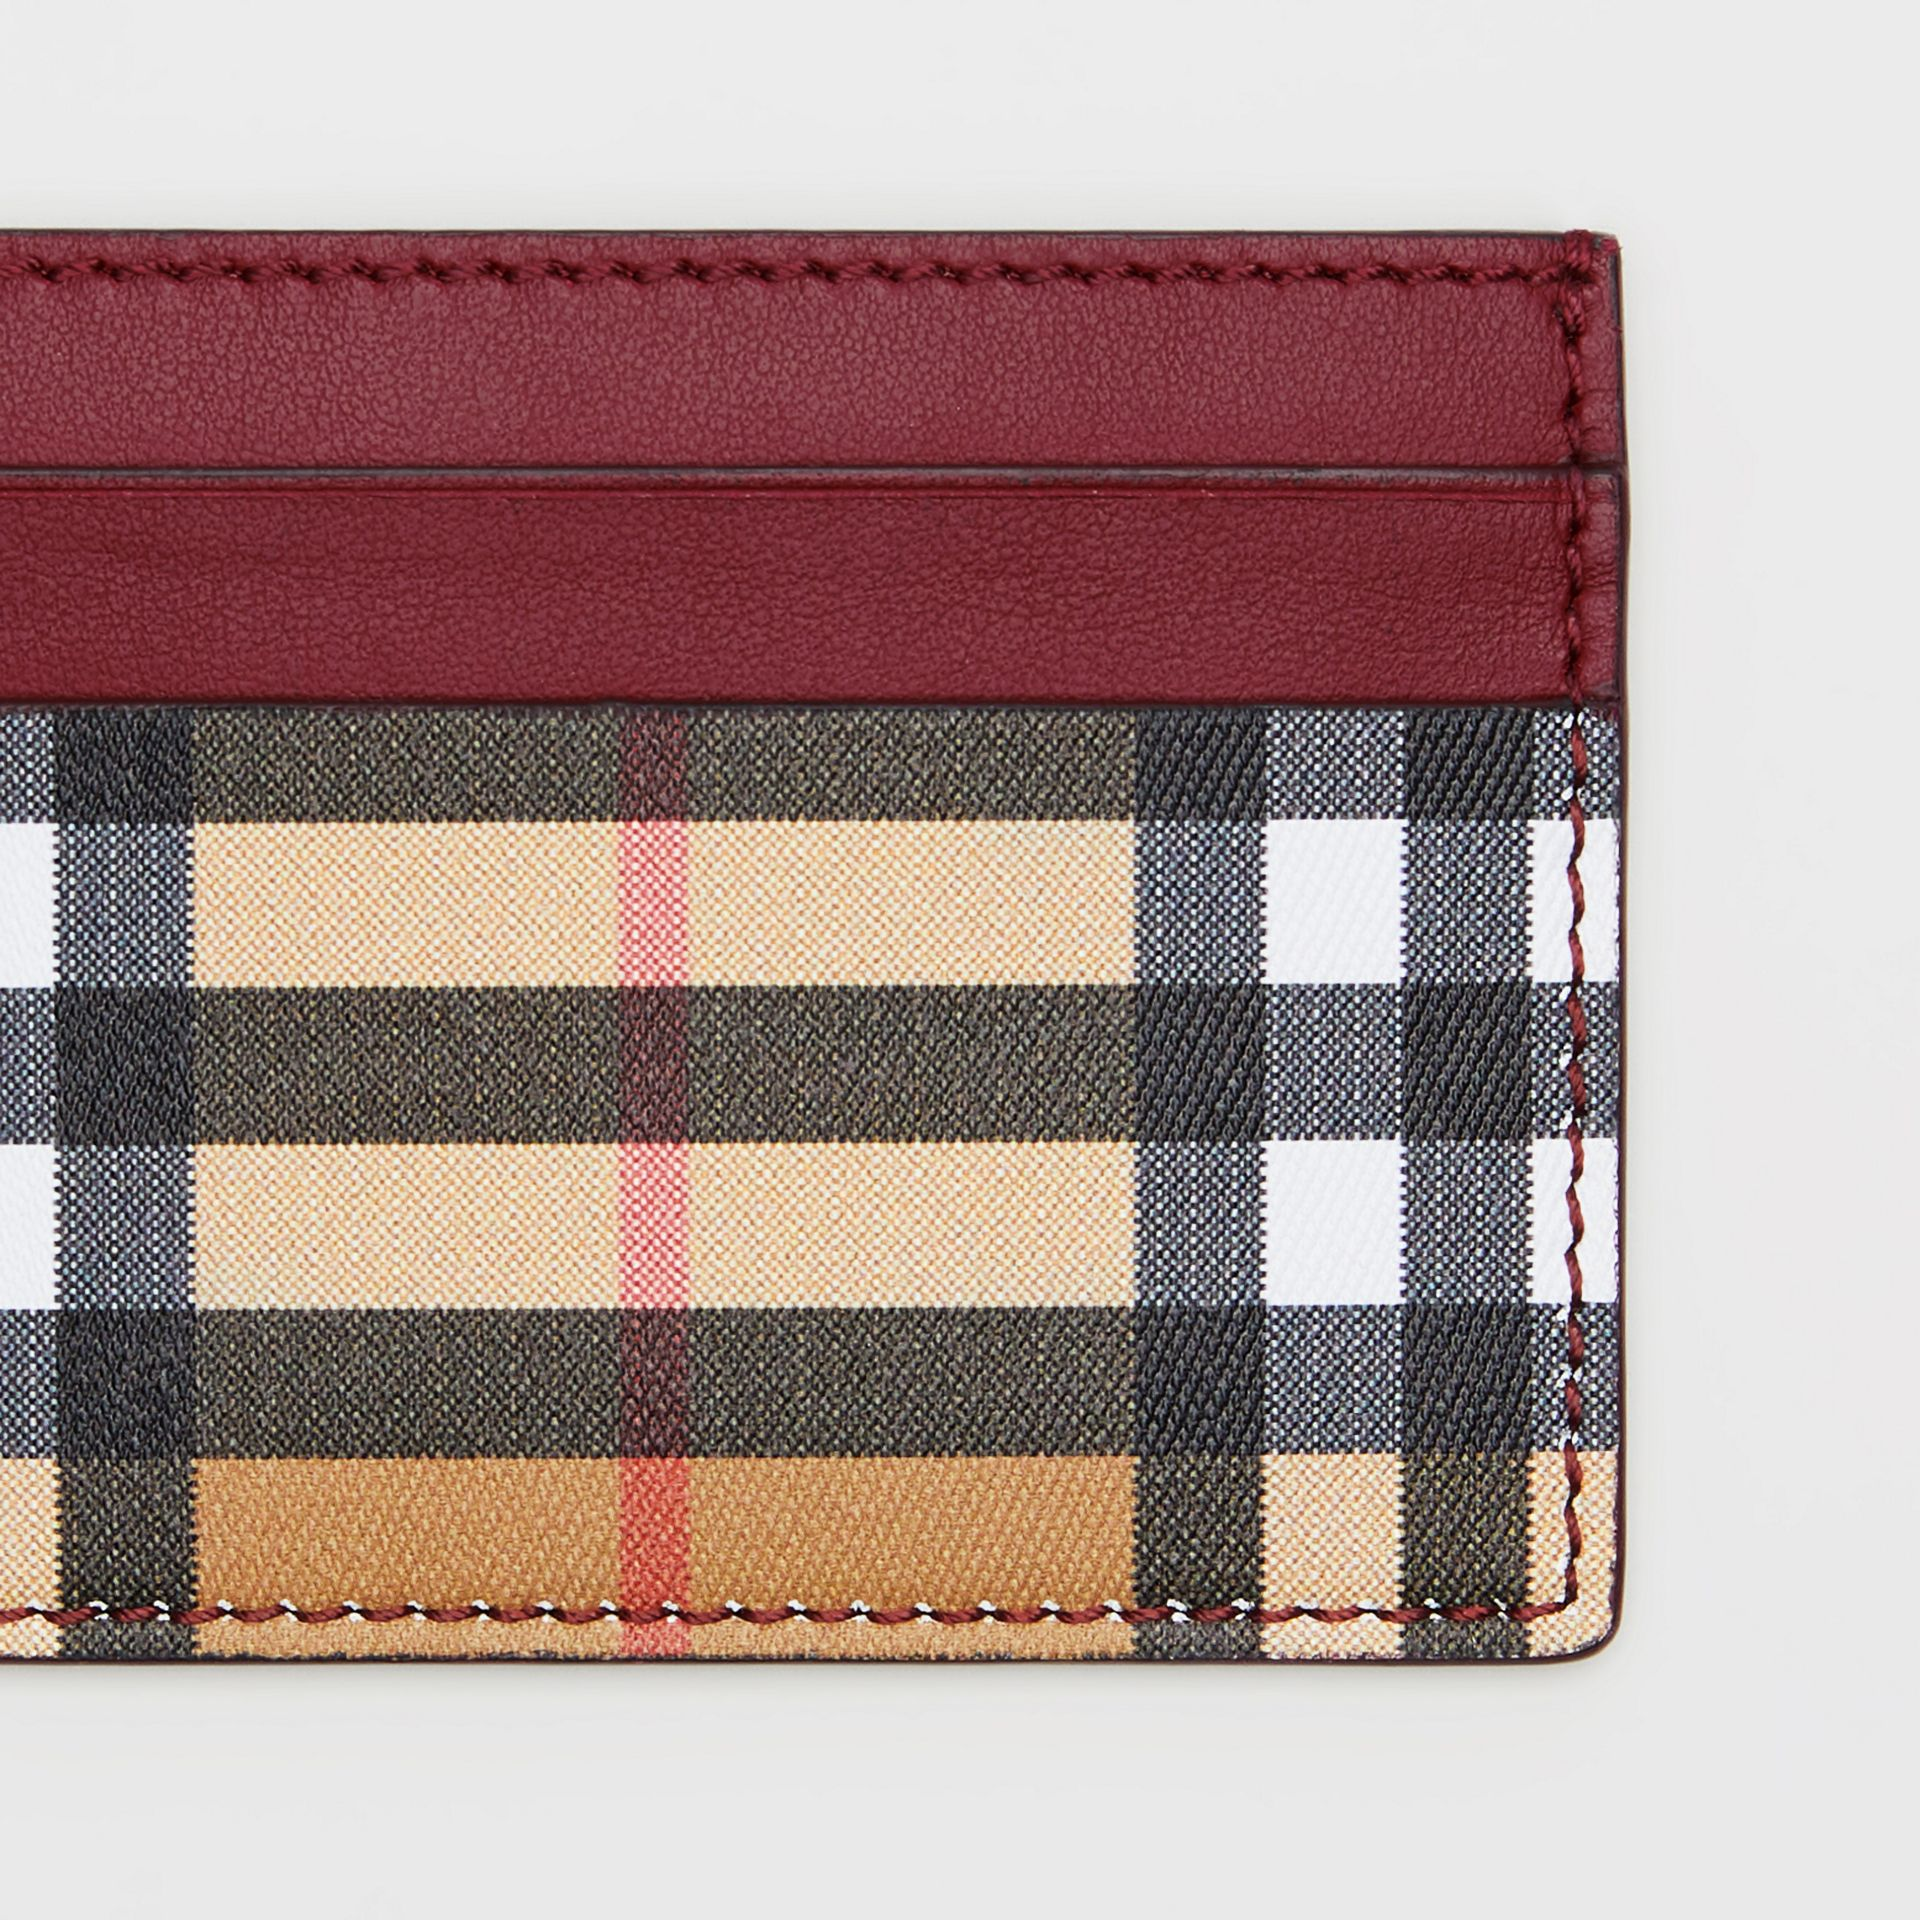 Vintage Check and Leather Card Case in Crimson - Women | Burberry Hong Kong - gallery image 1